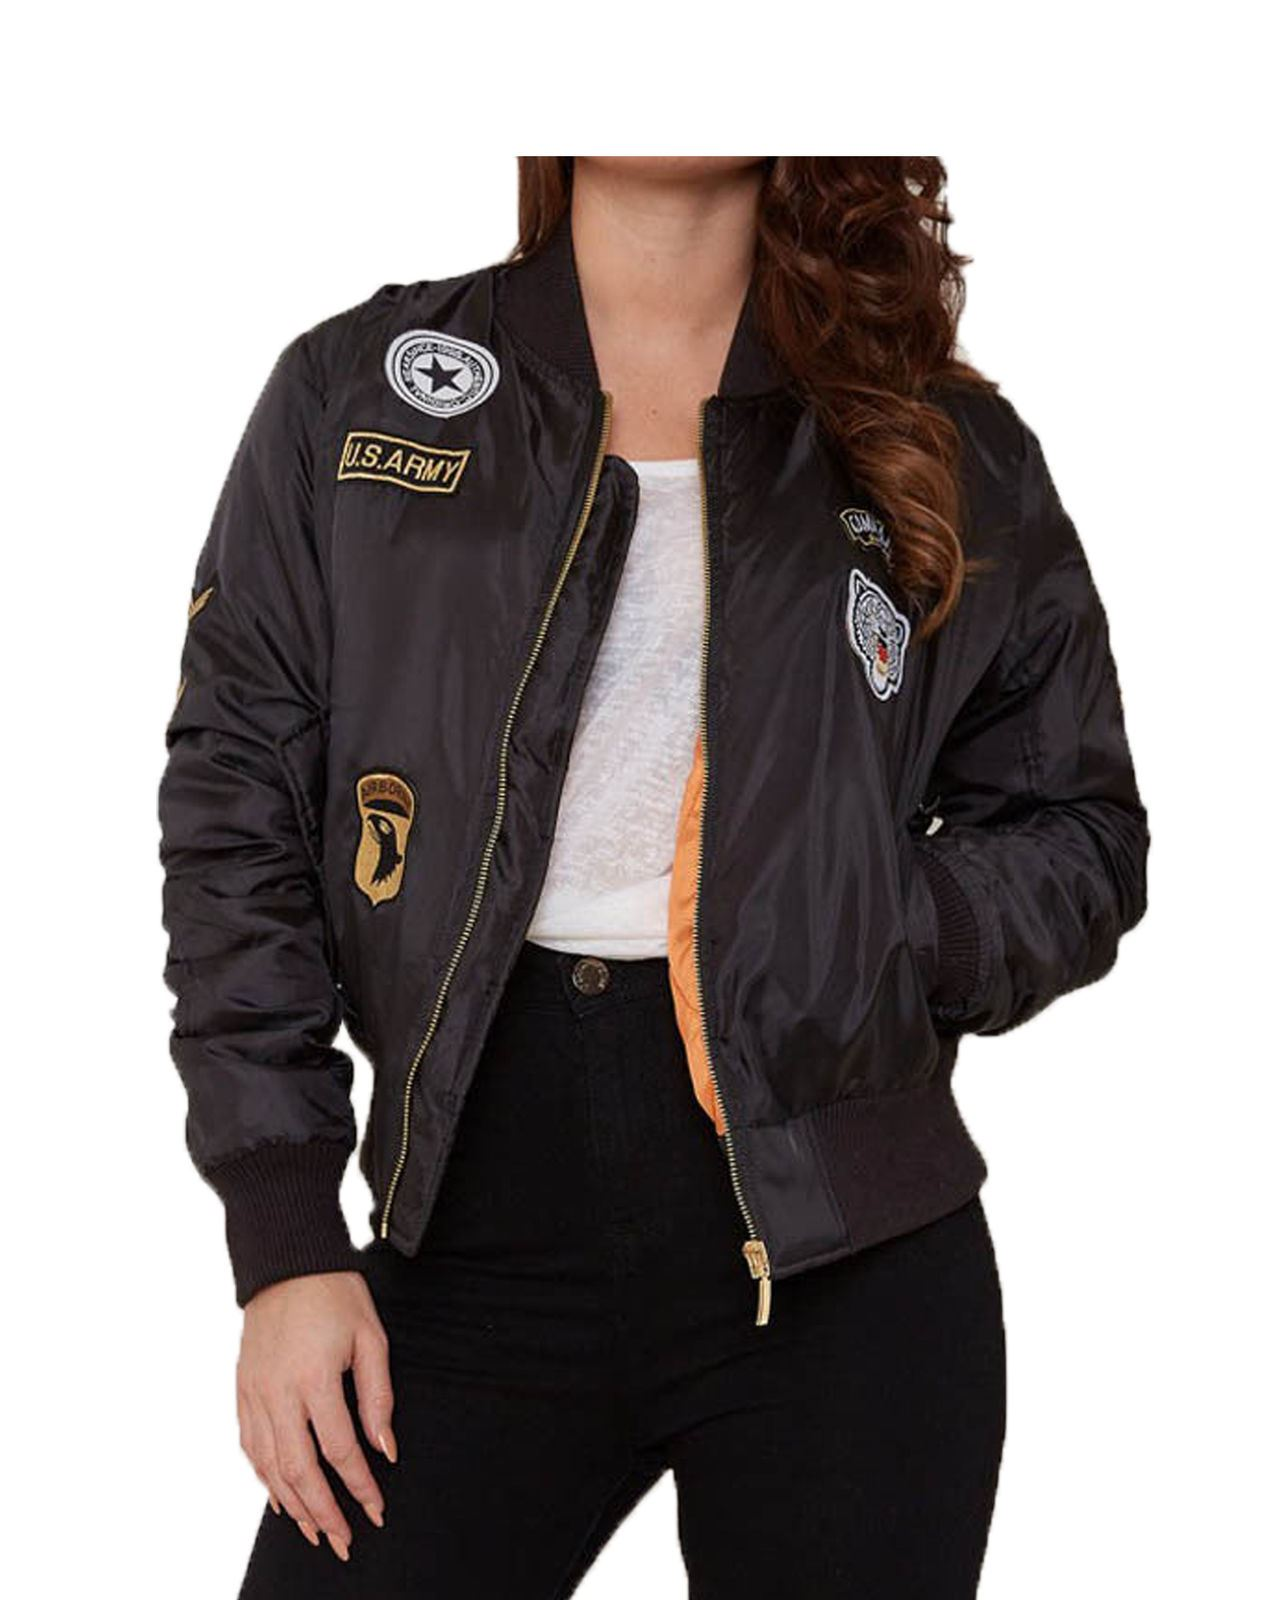 ec909b9be Details about Ladies Women US ARMY Comando Patch MA-1 Bomber Biker Jacket  WINTAGE Classic COAT